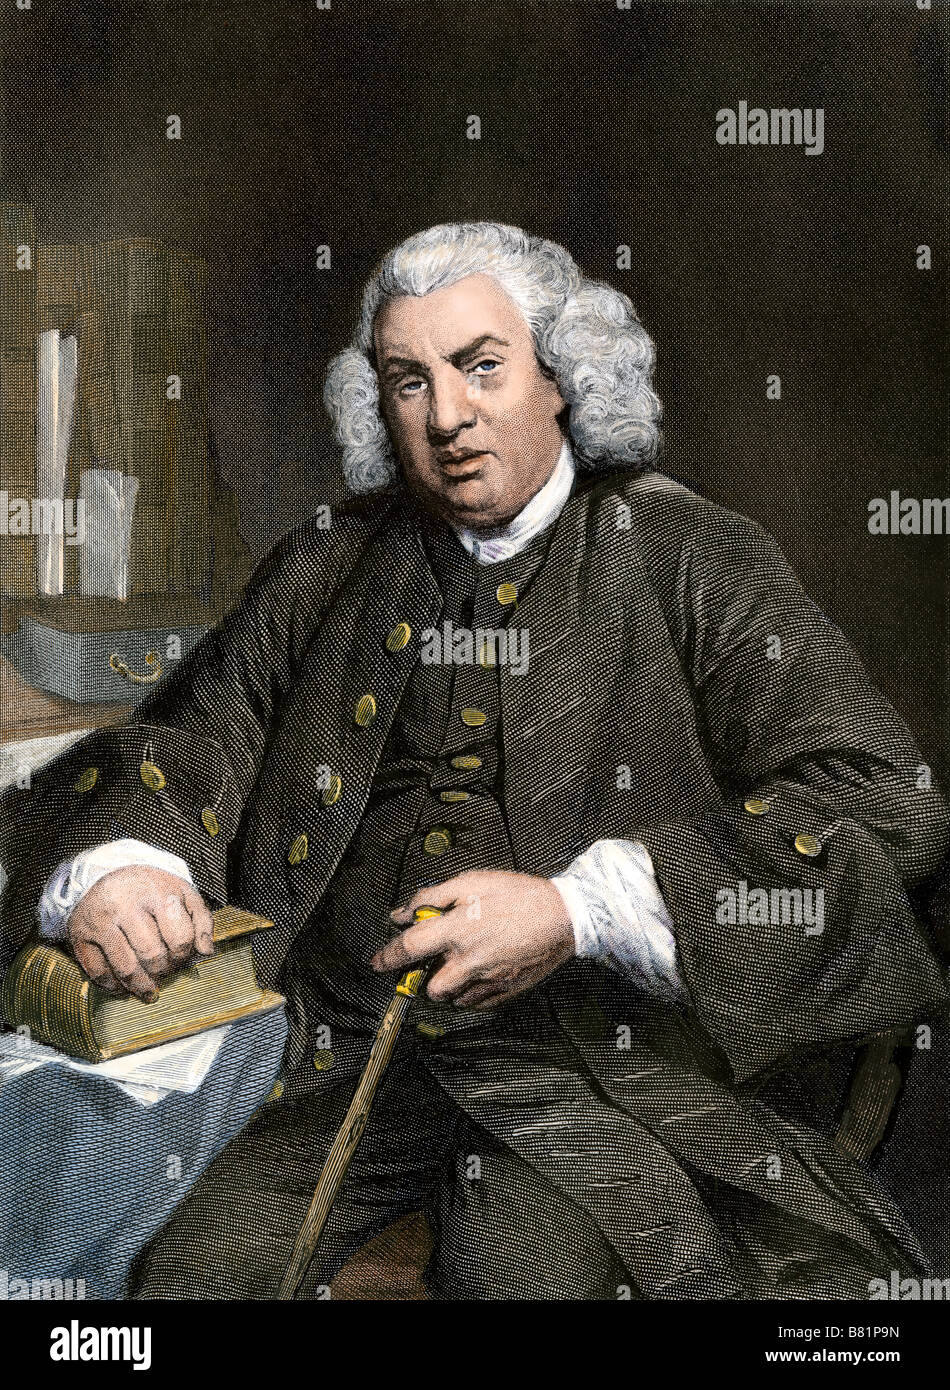 Samuel Johnson. Hand-colored steel engraving - Stock Image